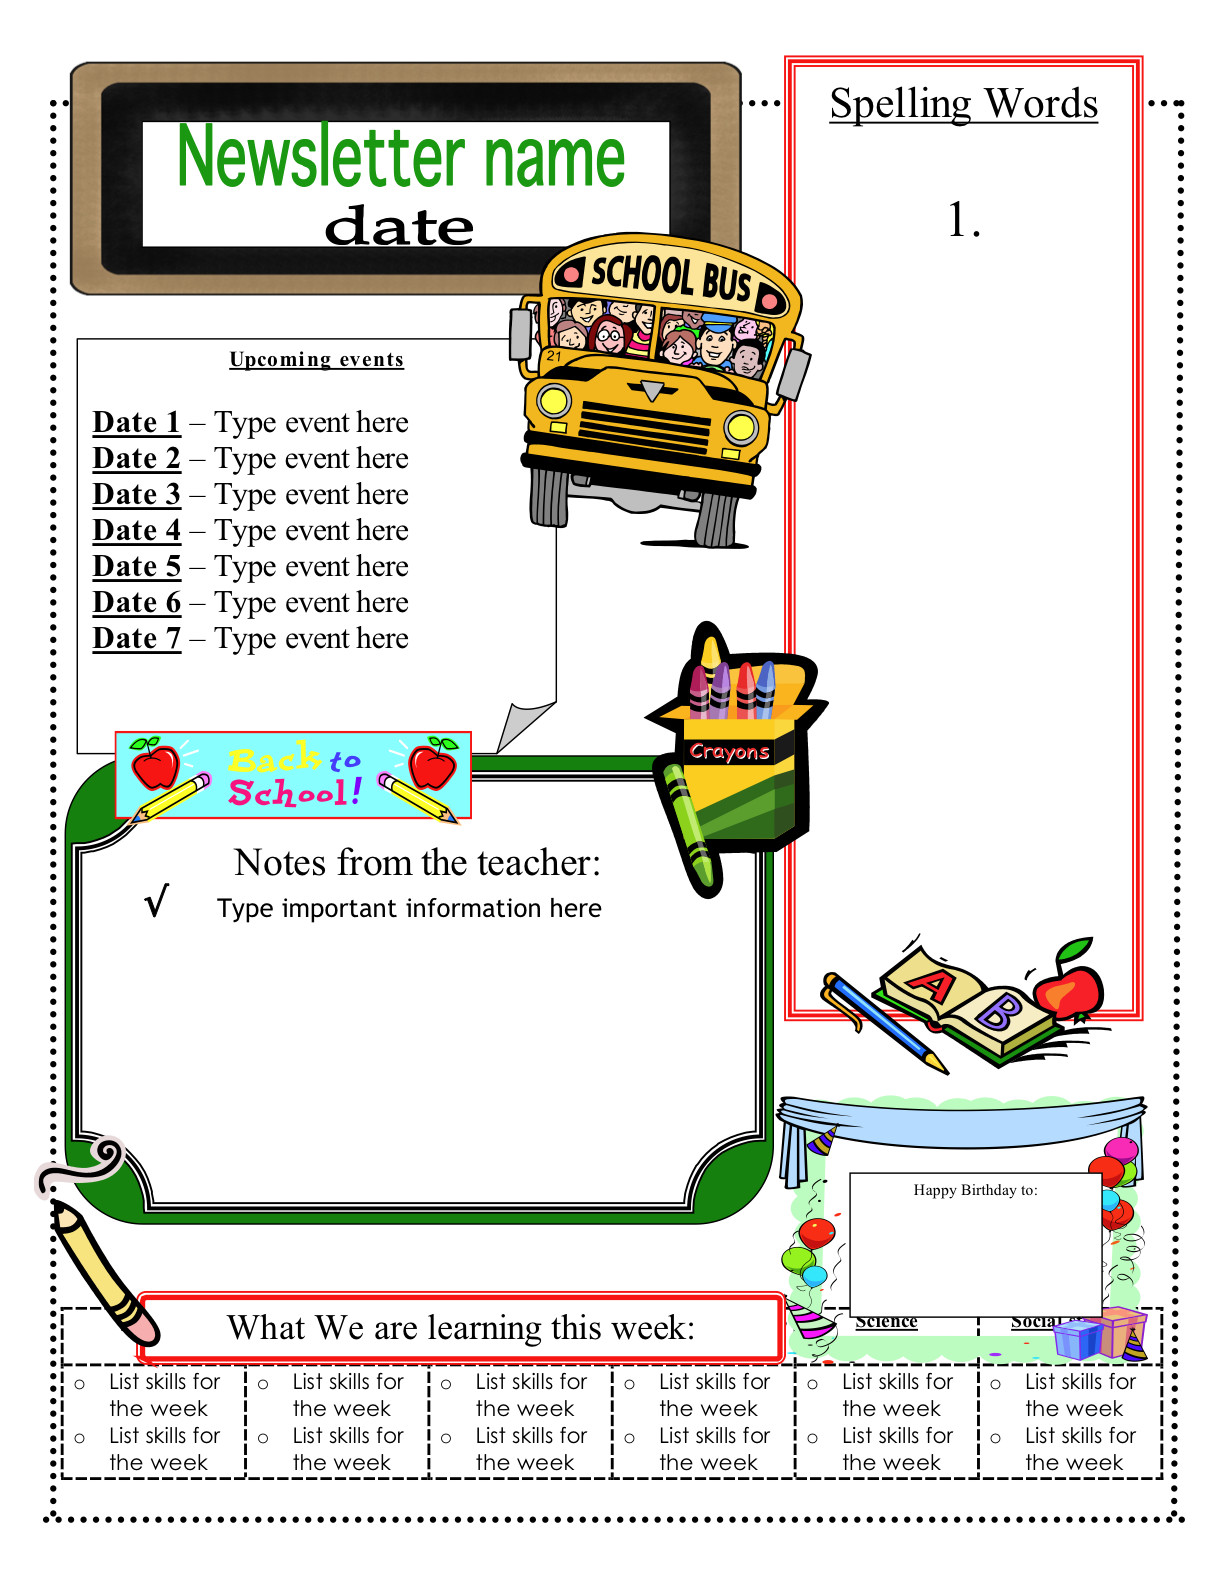 Free Teacher Newsletter Templates 3 6 Free Resources June 2012